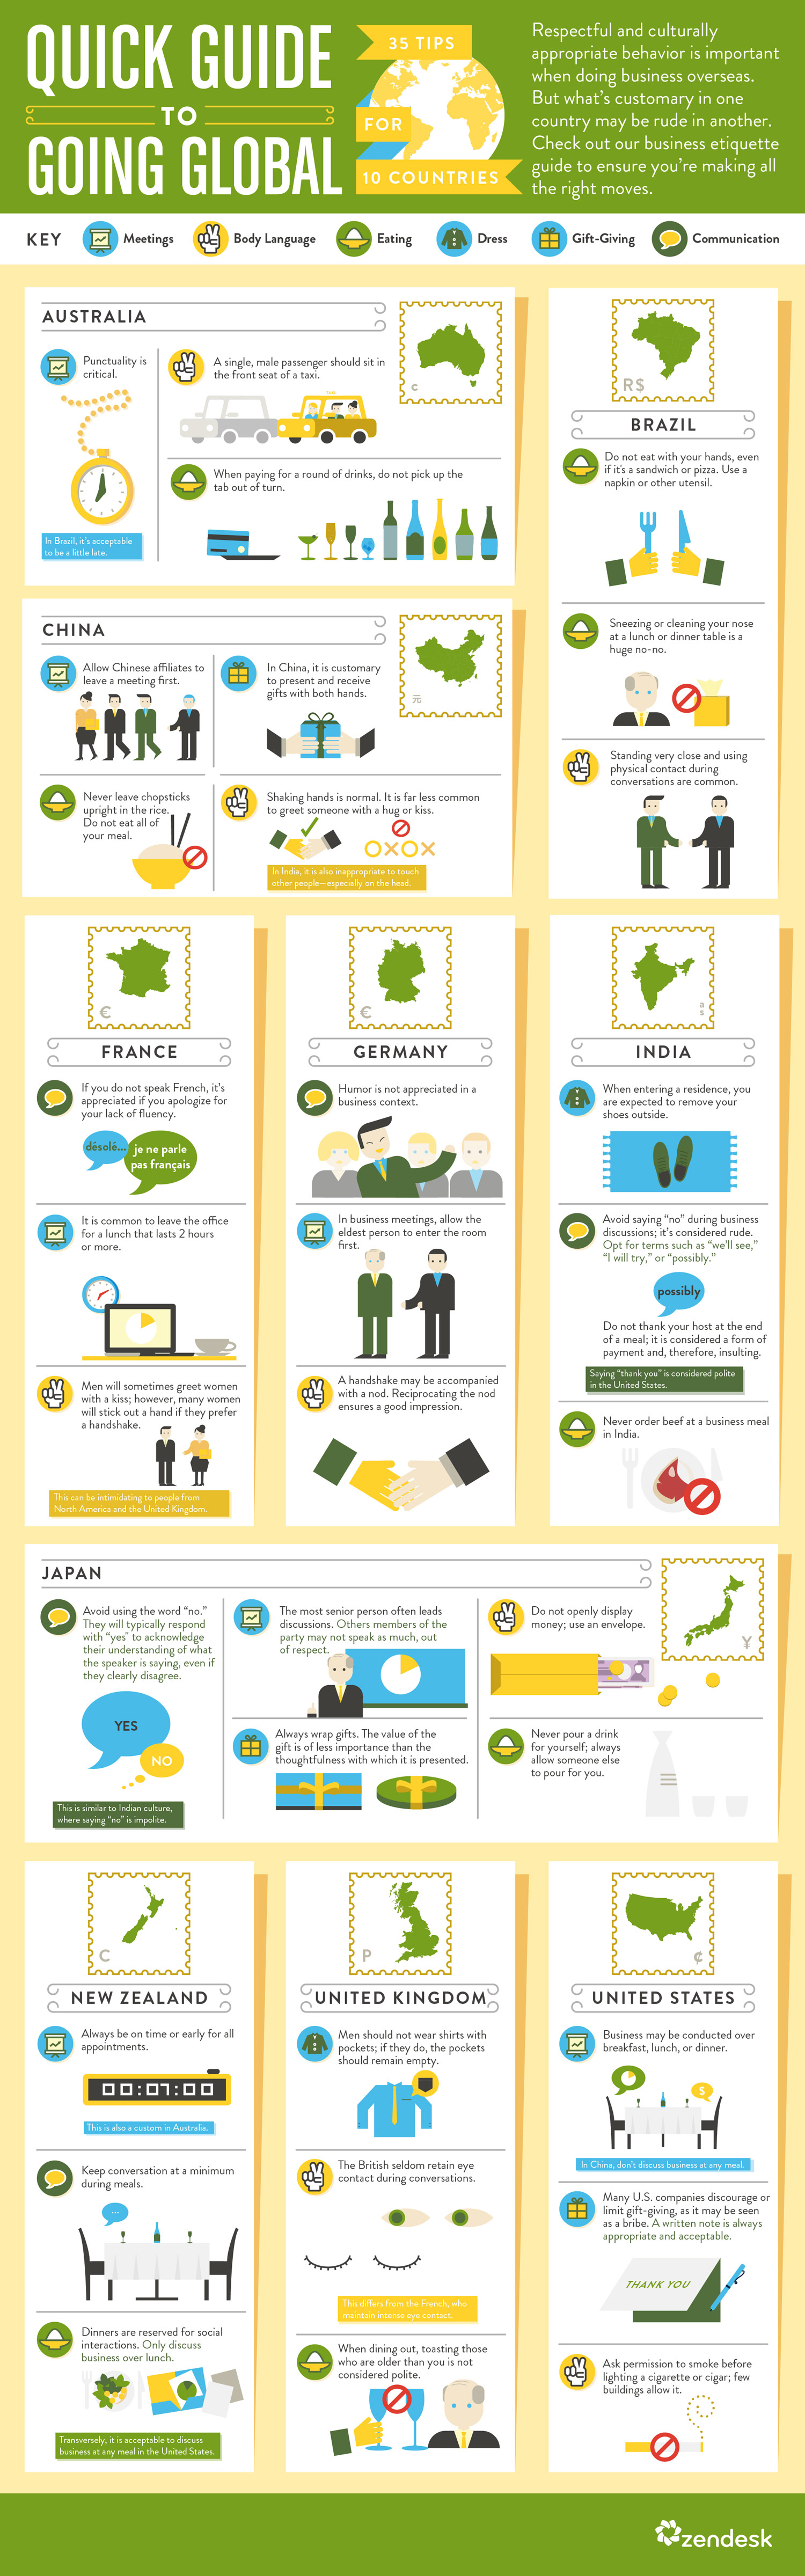 1402334199-35-tips-how-not-offend-international-business-partners-infographic